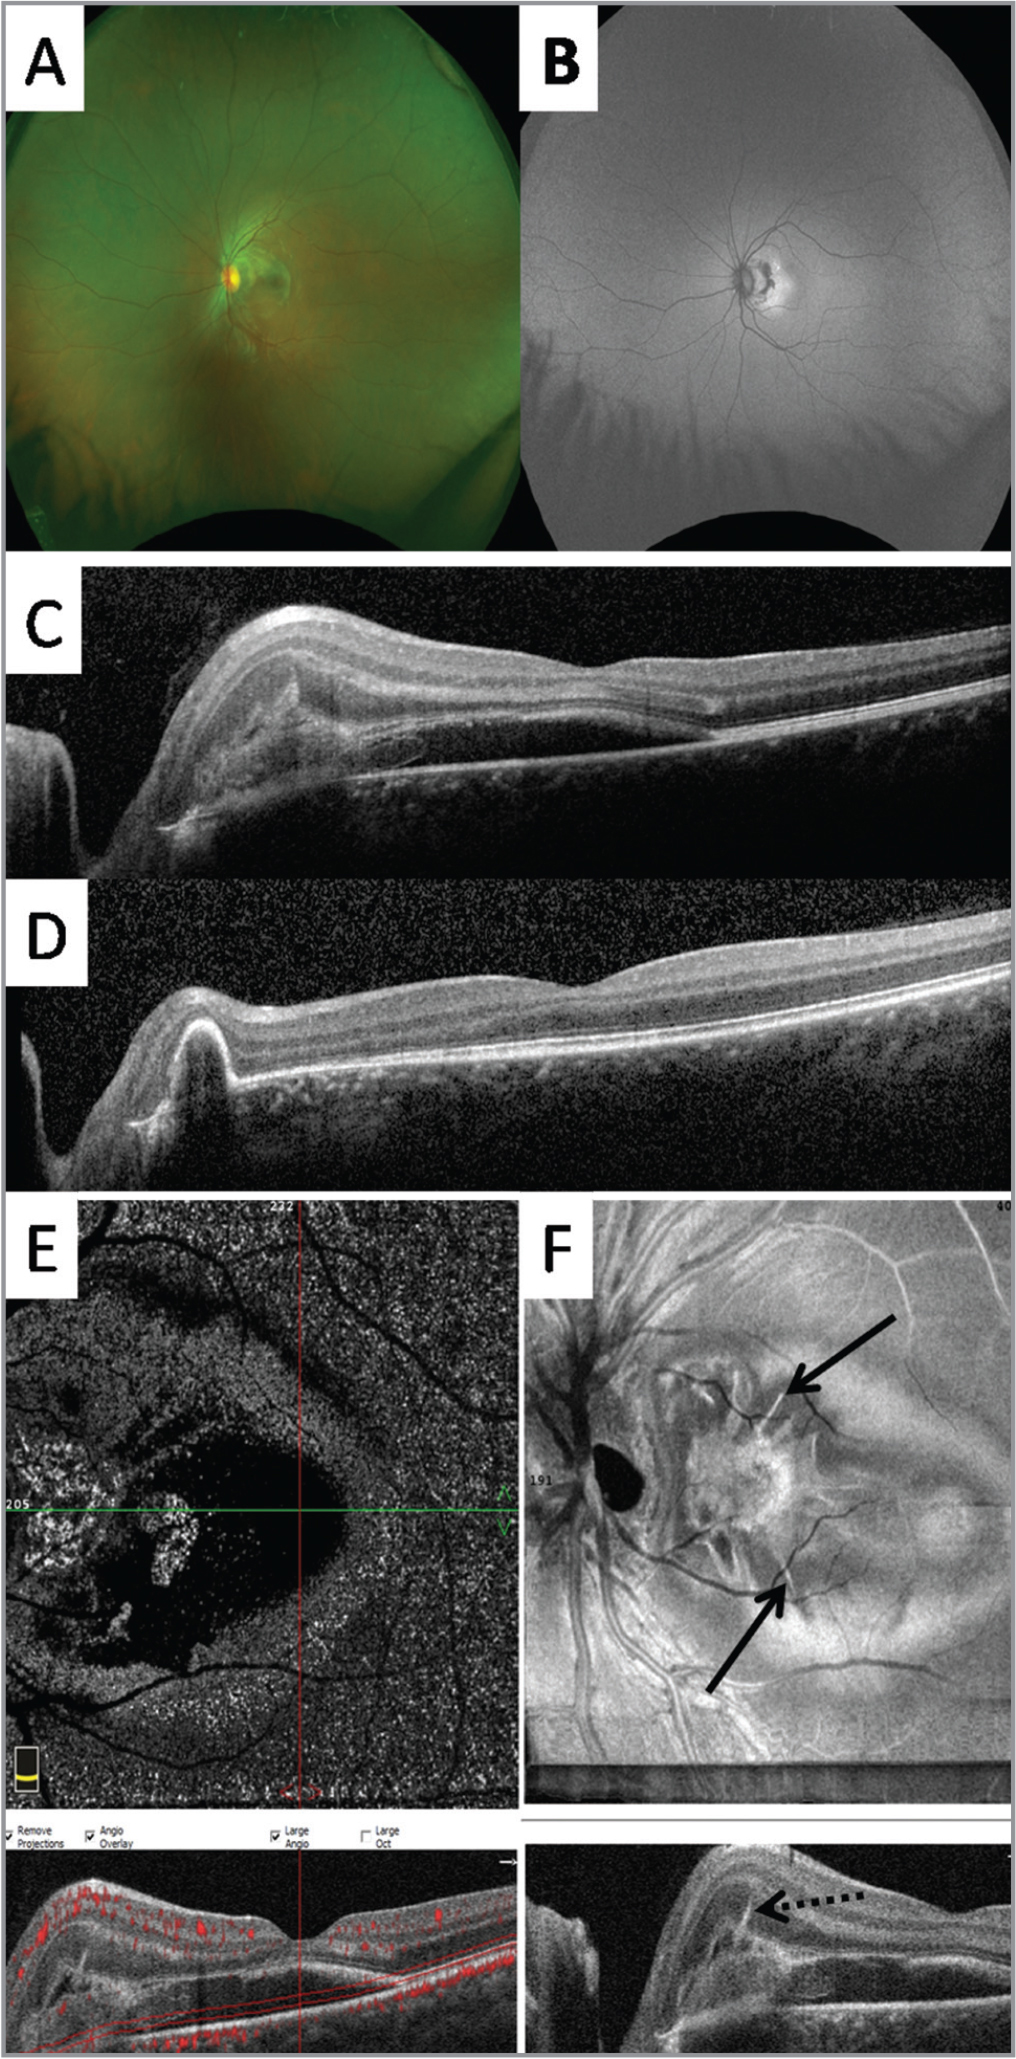 Pseudocolor fundus image (A), fundus autofluorescence (B), optical coherence tomography (OCT) (C, D), en face OCT angiography (OCTA) (E), and en face structural OCT (F) from a 13-year-old girl with idiopathic choroidal neovascularization (CNV). Pitchfork spikes associated with subretinal hyperreflective material are noted with the baseline cross-sectional OCT (C; F, dashed arrow) and resolved after two intravitreal ranibizumab injections. The type 2 CNV lesion confirmed with OCTA evolved to a type 1 lesion (D). Note the remarkable spiked-wreath pattern of the lesion with baseline en face OCT (F, solid arrow) with segmentation adjusted to the outer retina.